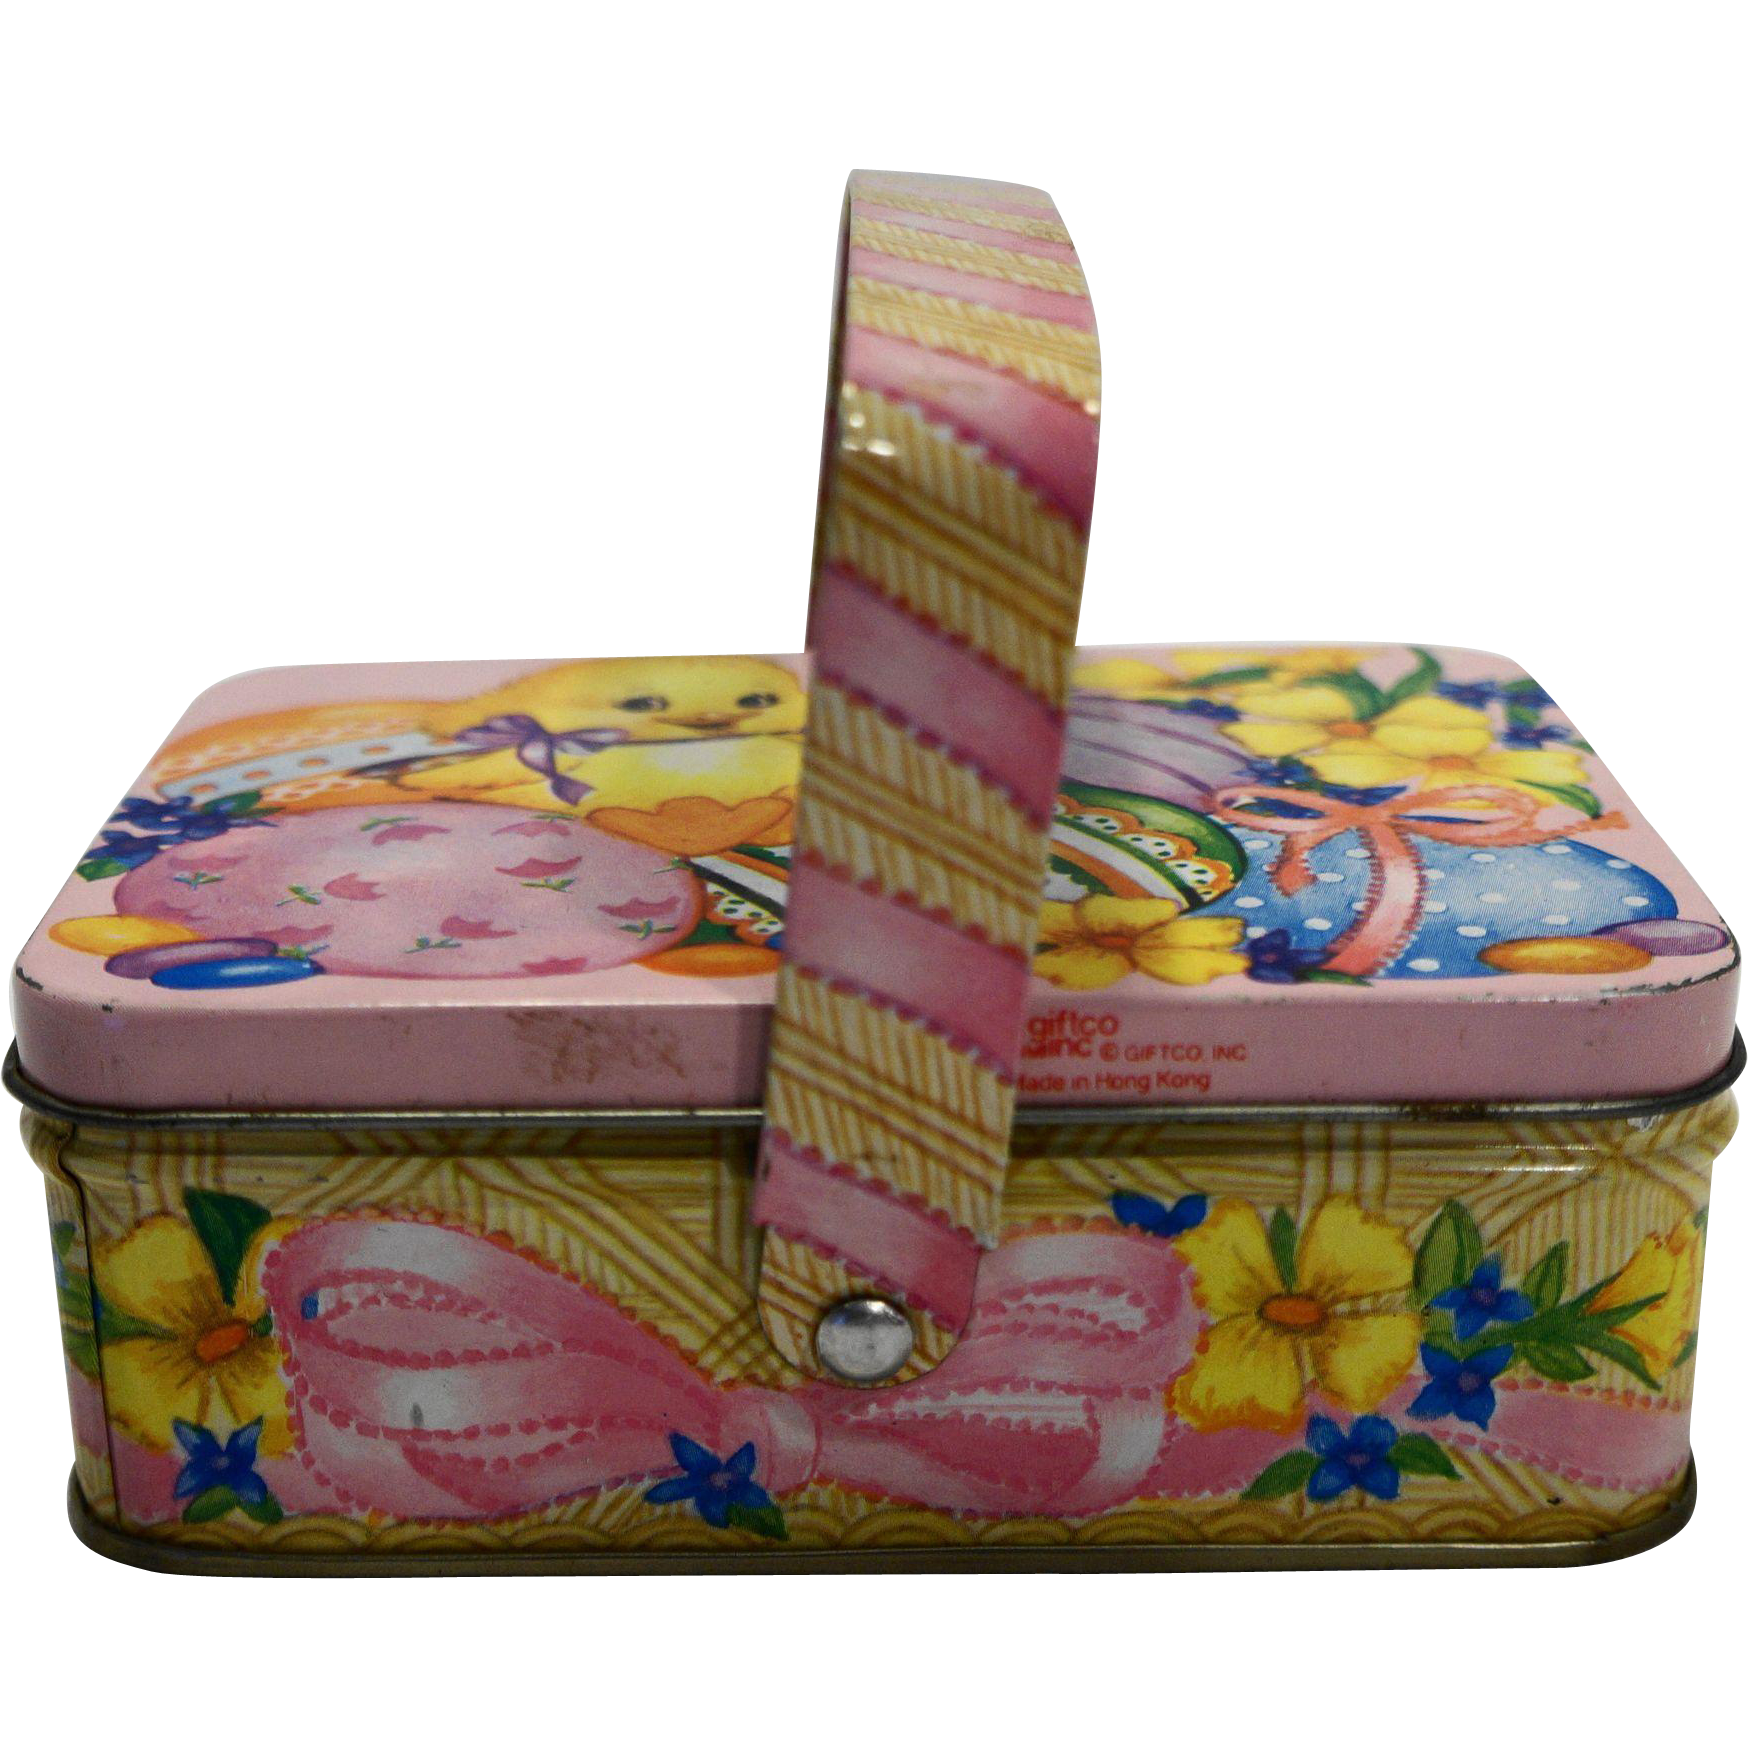 Giftco Easter Spring Chick Duck Eggs Themed Tin Basket